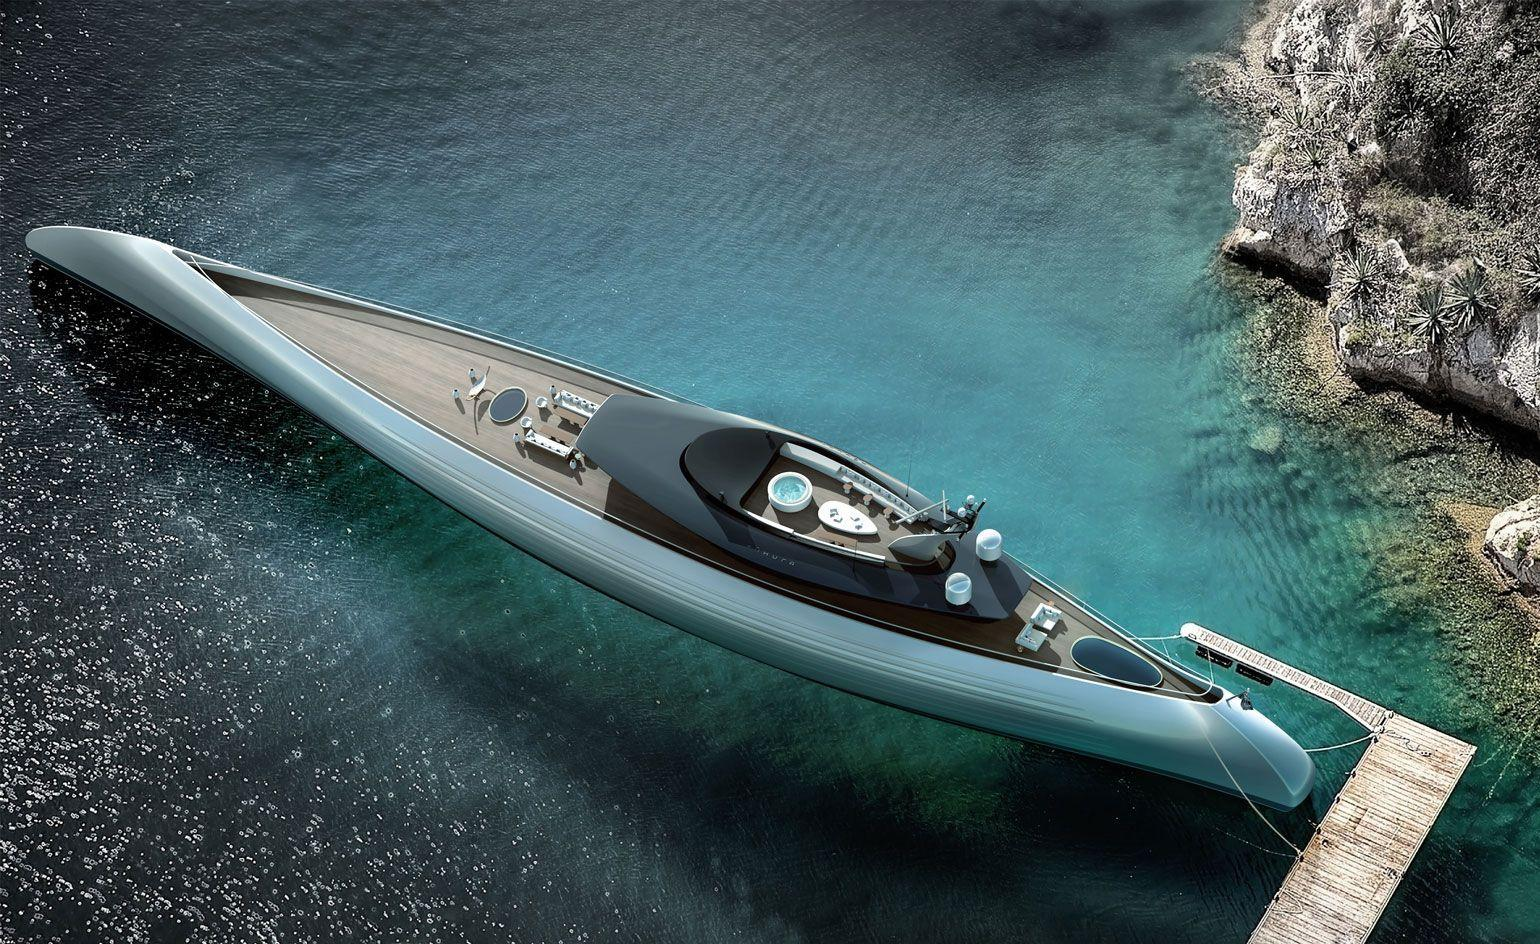 Dream boats: outrageously designed yacht concepts of 2018